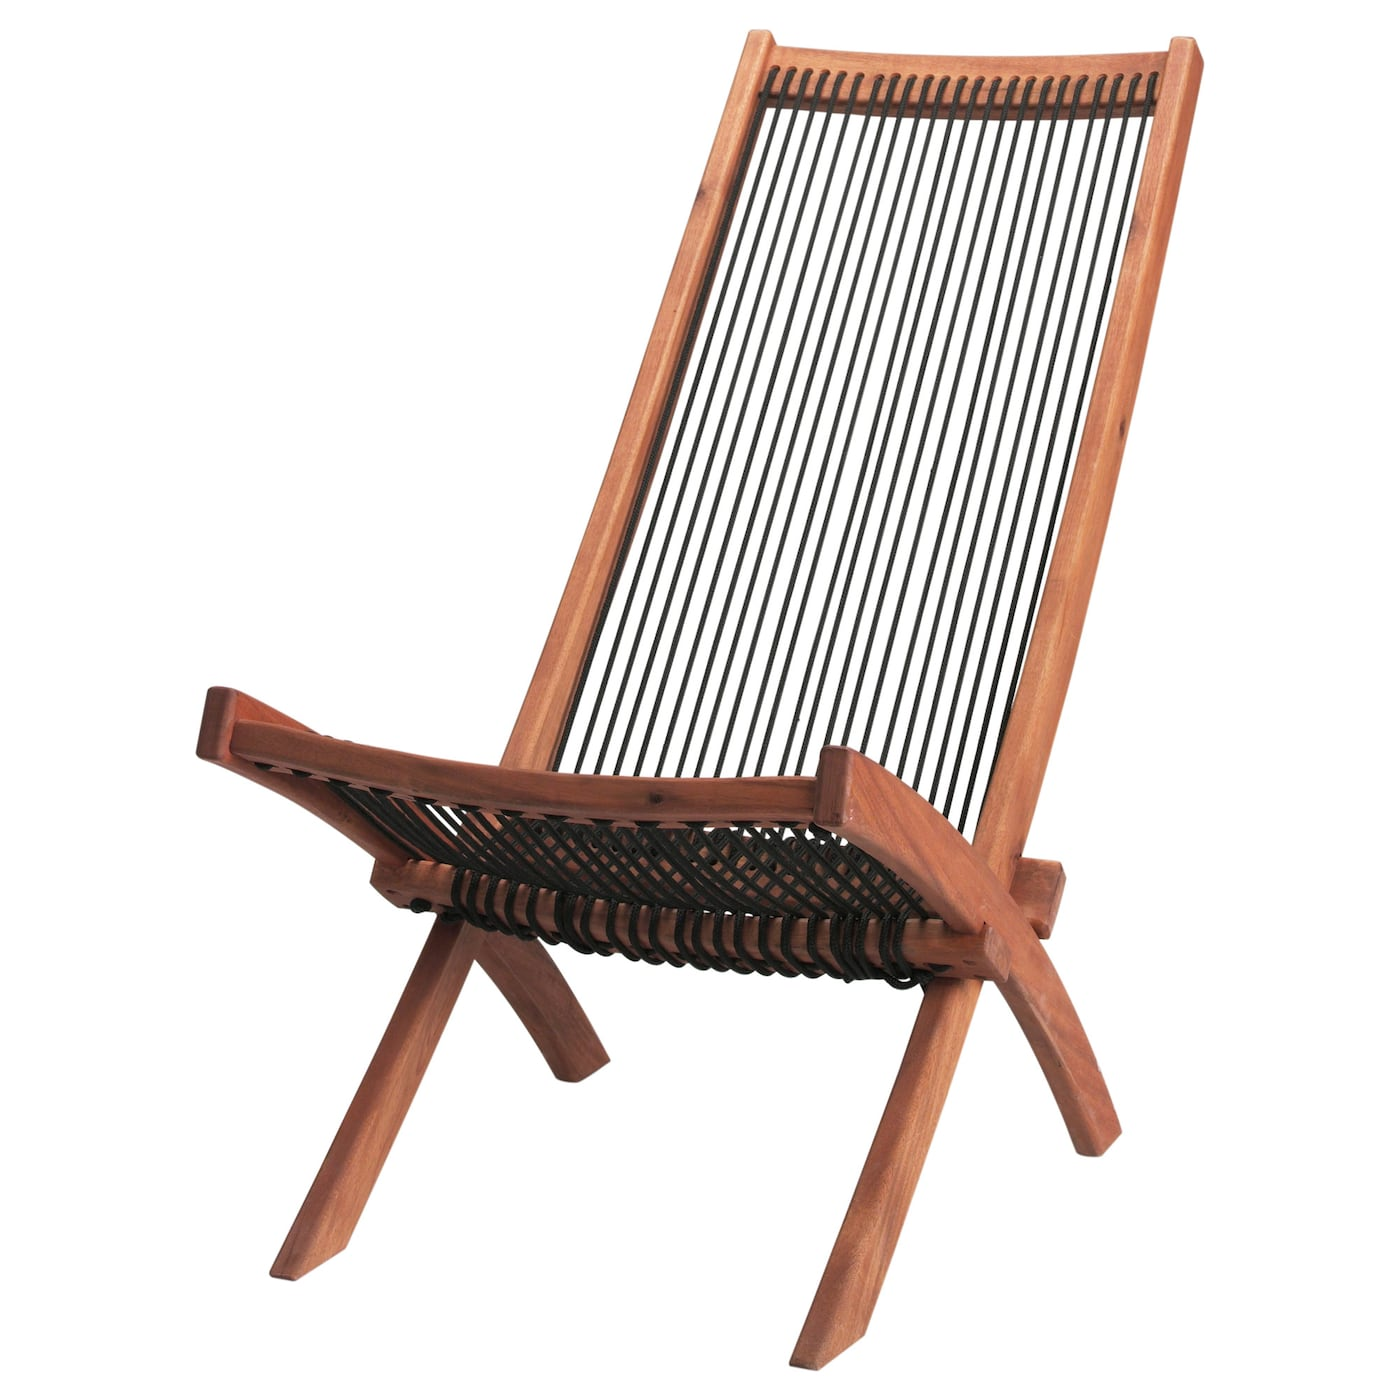 IKEA BROMMÖ Lounger, Outdoor Easy To Fold Up And Put Away.